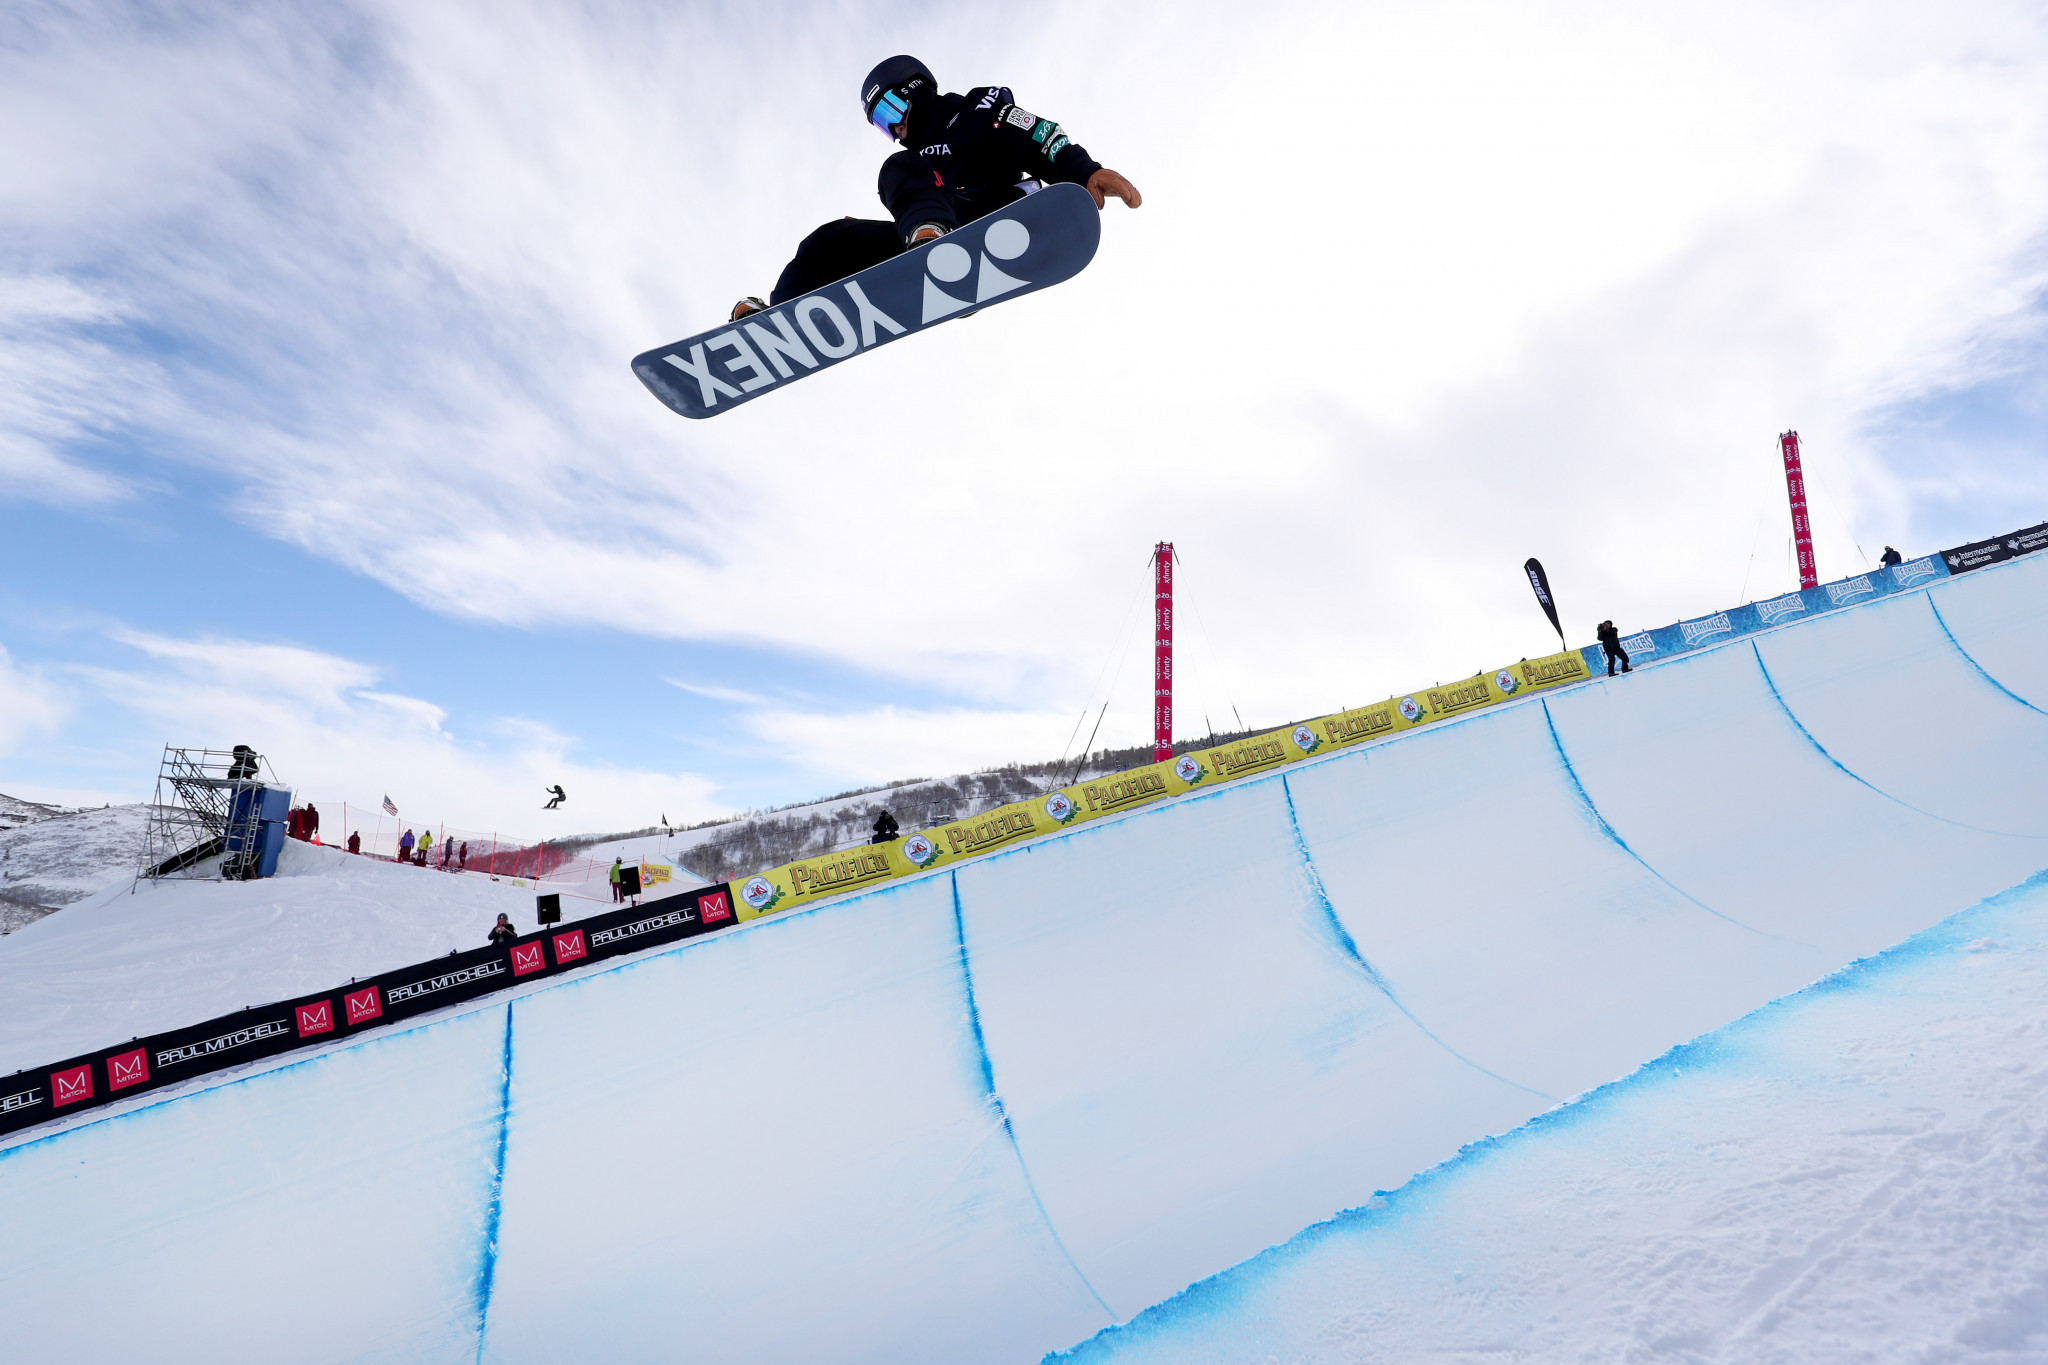 Yuto Totsuka triumphed in the men's halfpipe event at the FIS Snowboard World Cup in Calgary ©Getty Images